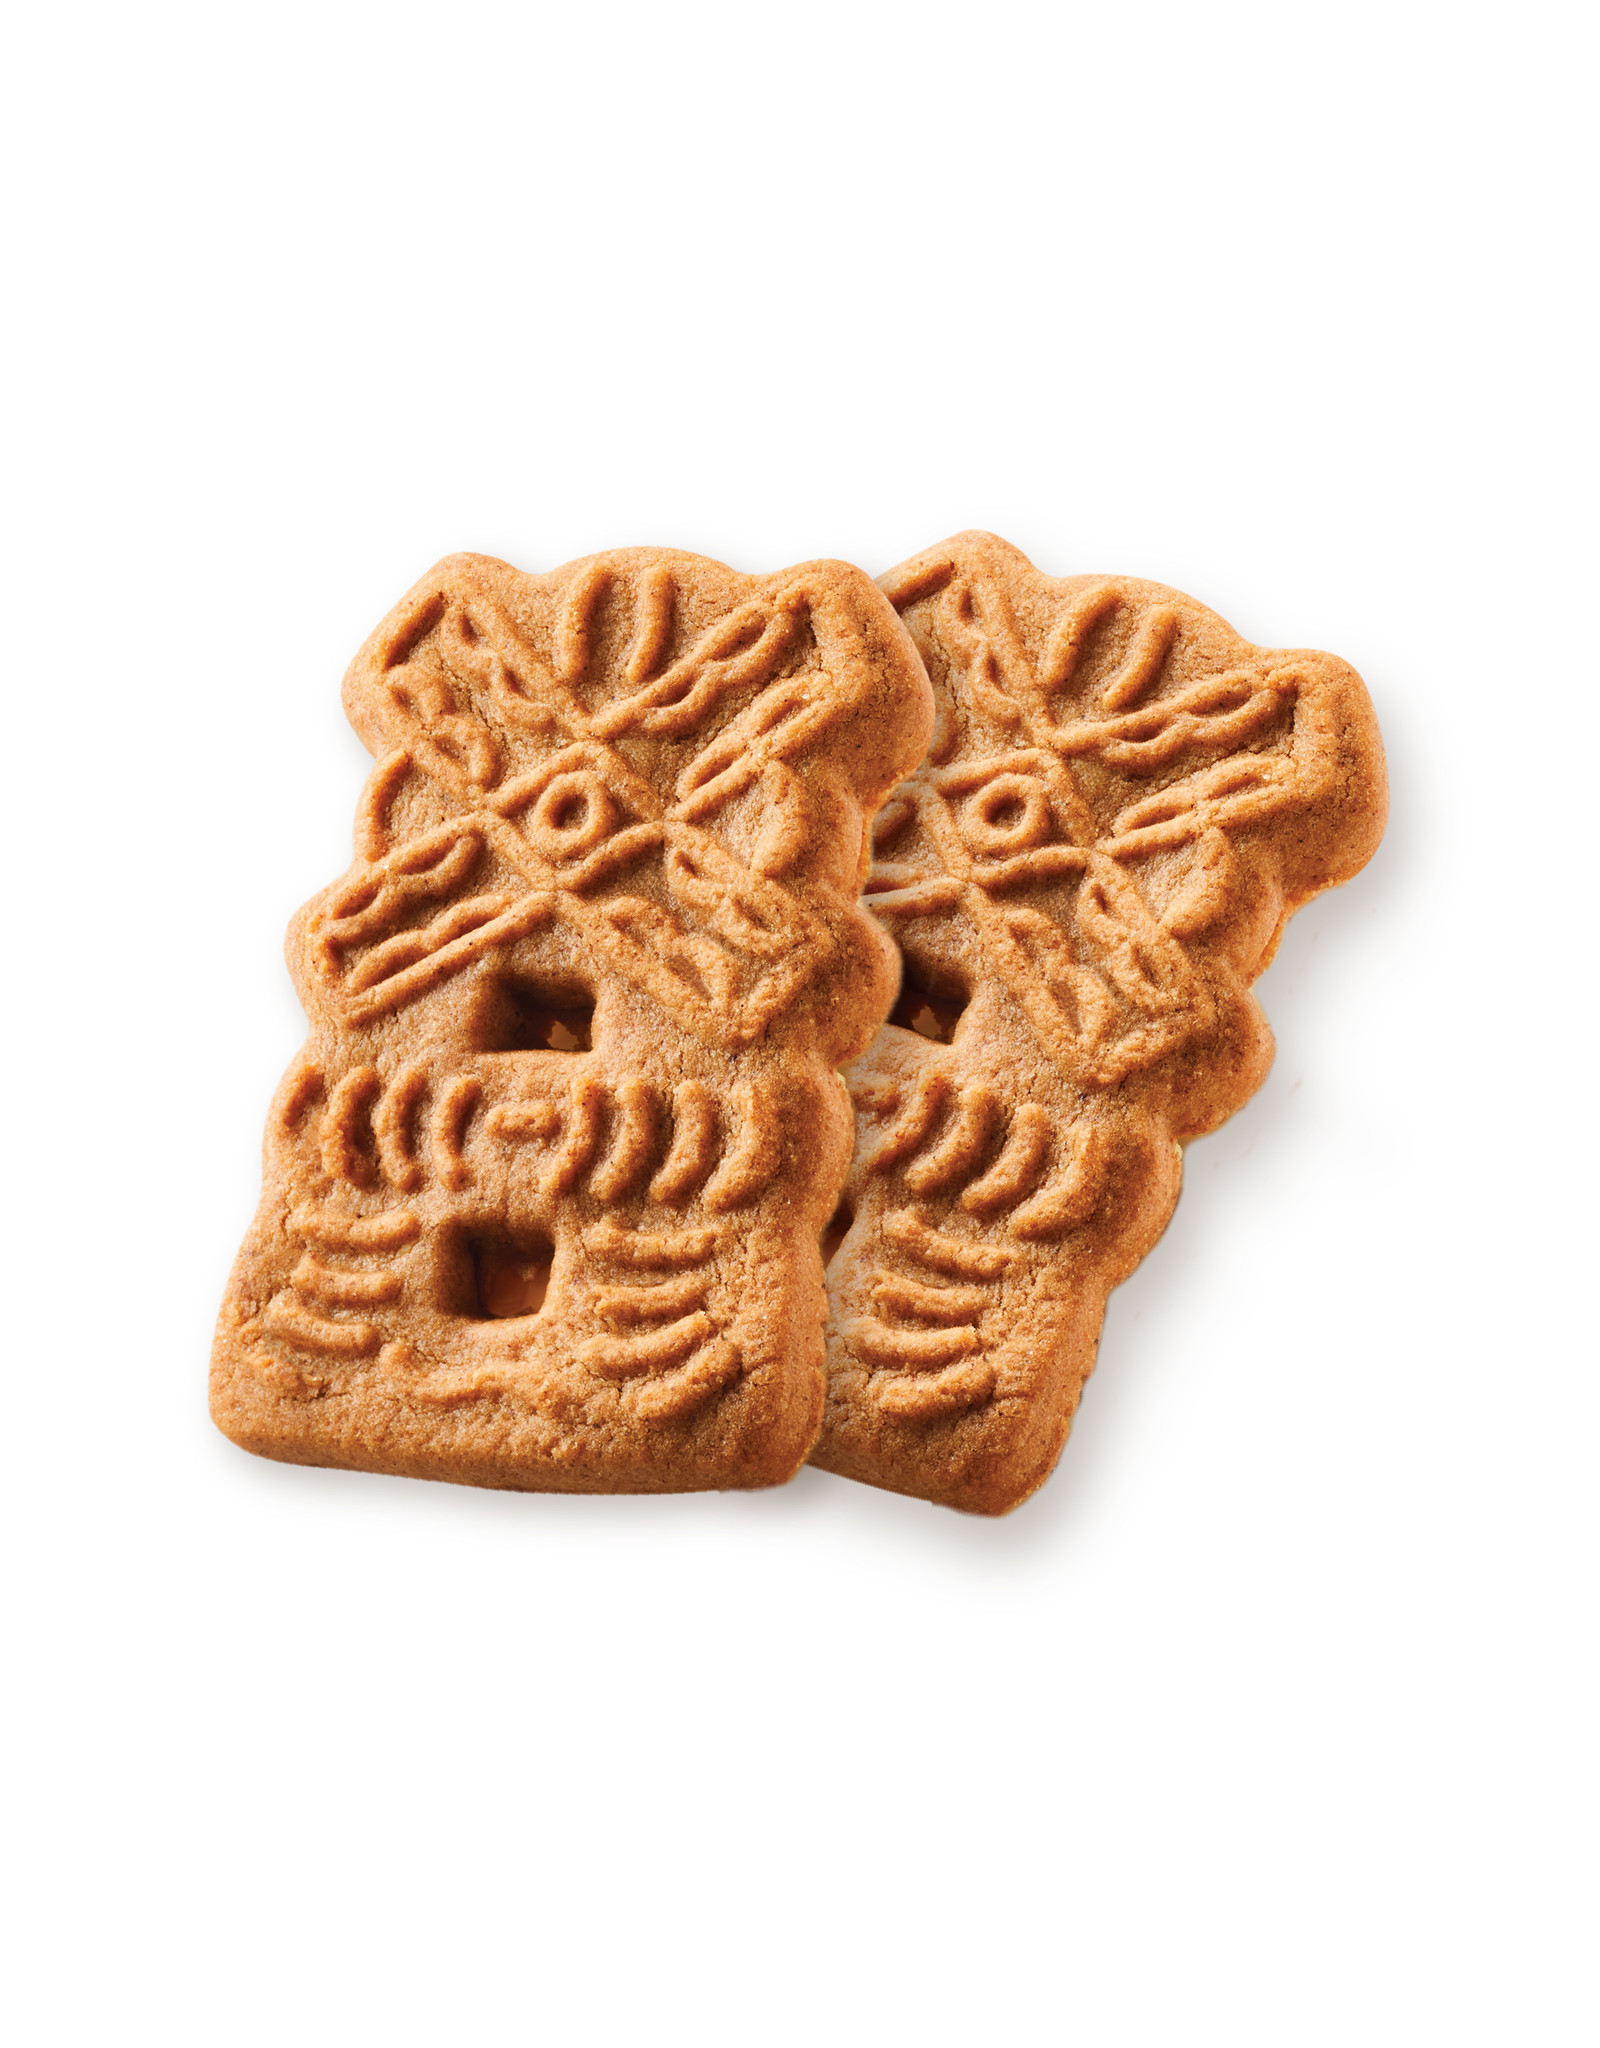 Hellema Hellema Speculaas Spiced Gouormet Windmill Cookies in Delft Tin (Dutch) - 14 x (14 Oz. / 415g)